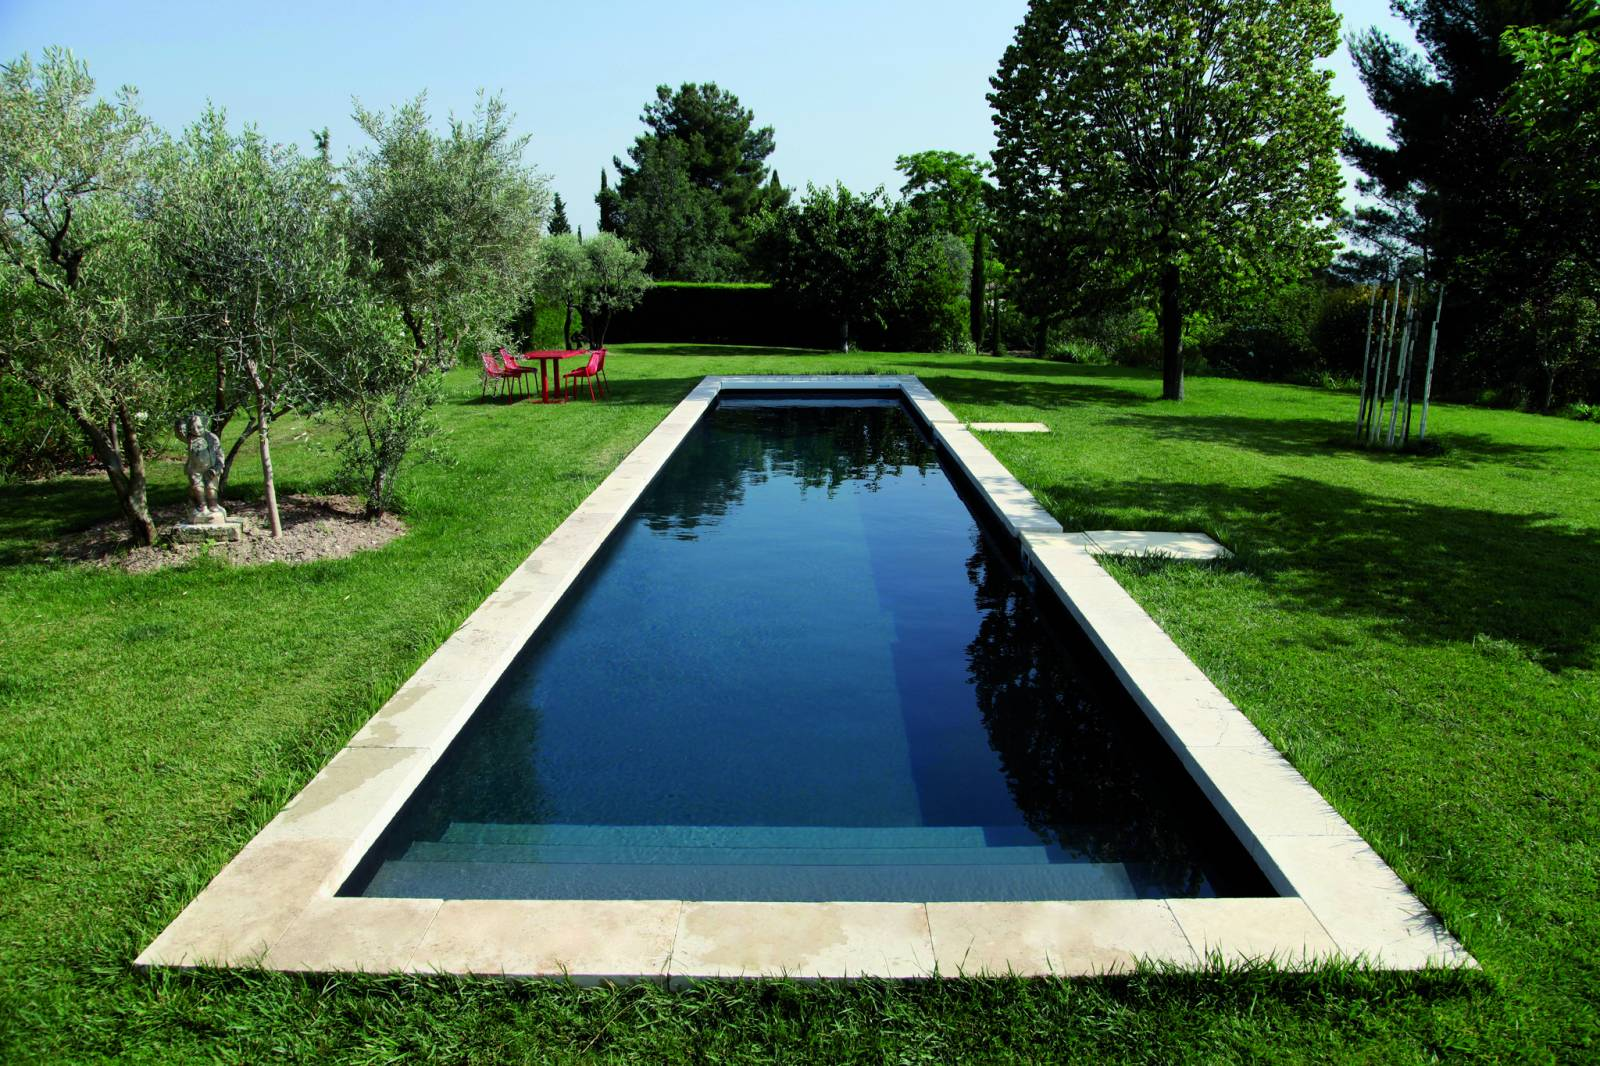 Couloir de nage noir jce piscines for Liner noir piscine